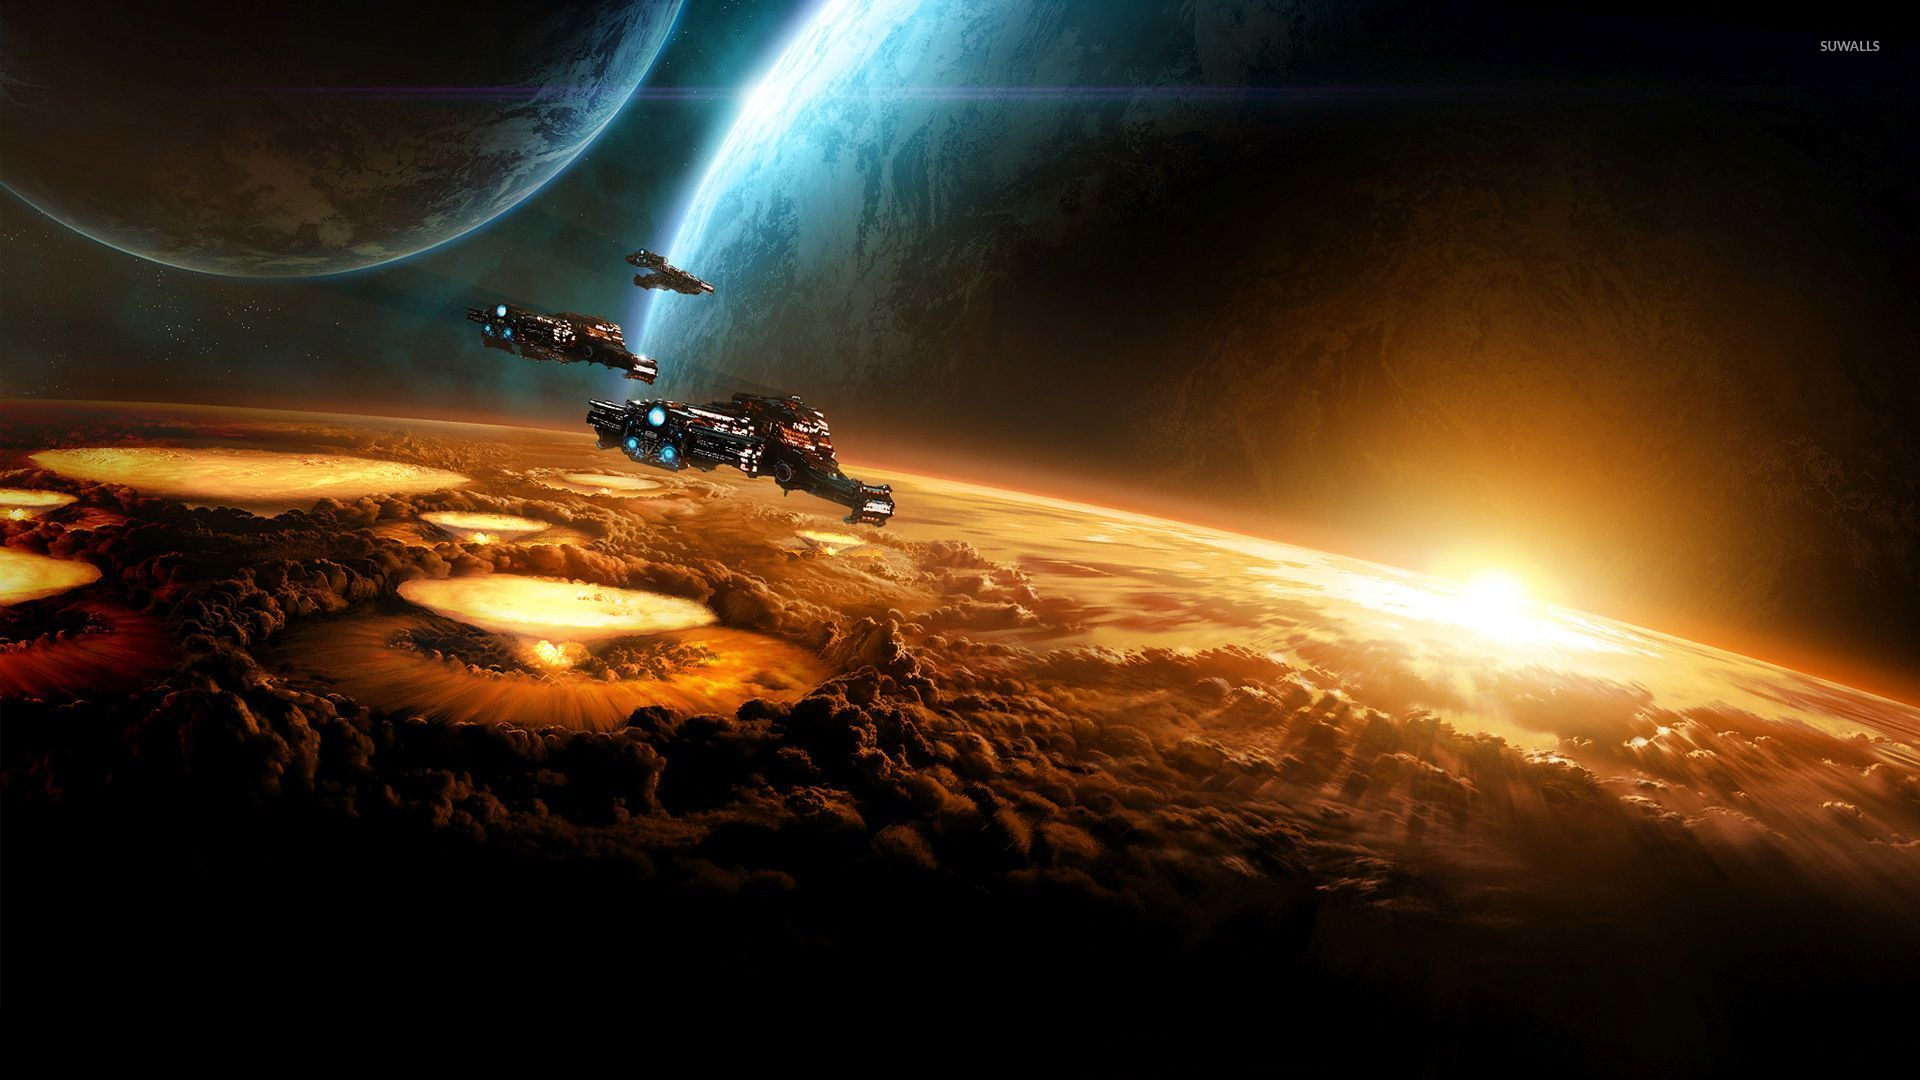 spaceships heading to the light wallpaper fantasy